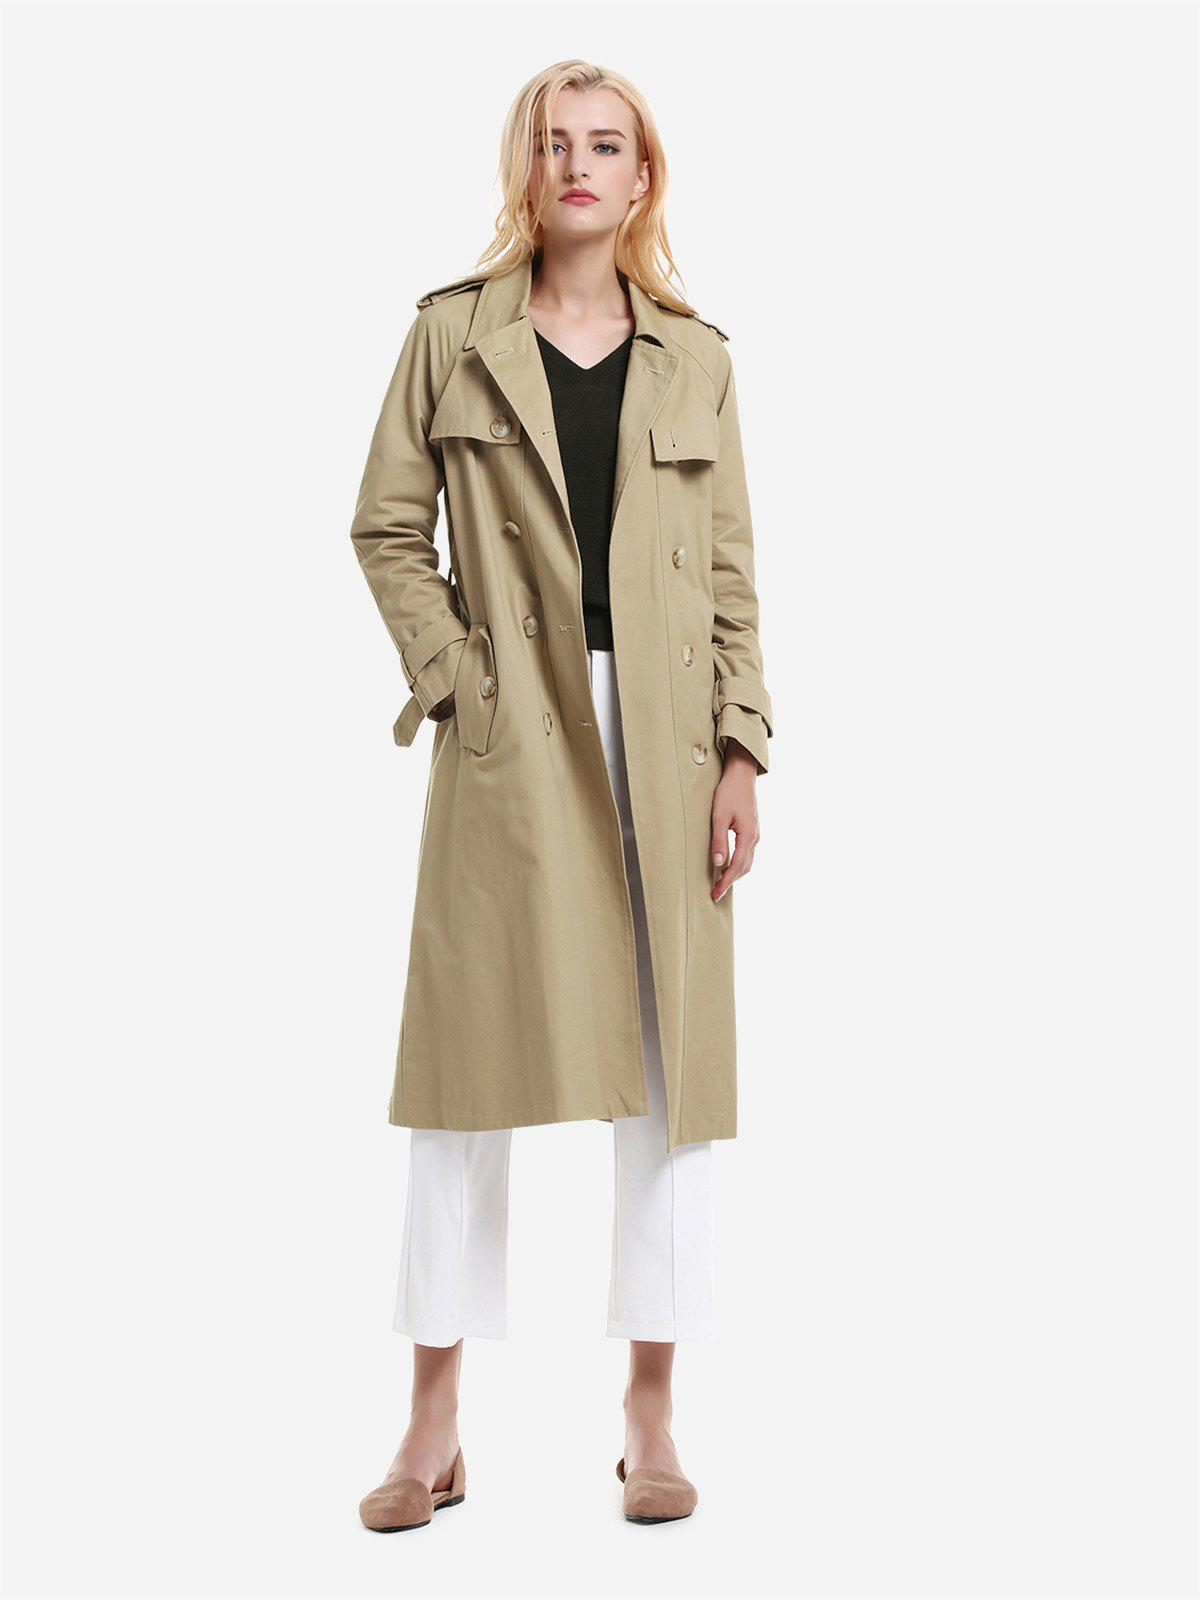 ZAN.STYLE à la Palangre Silhouette Double Breasted Belted Trench Coat